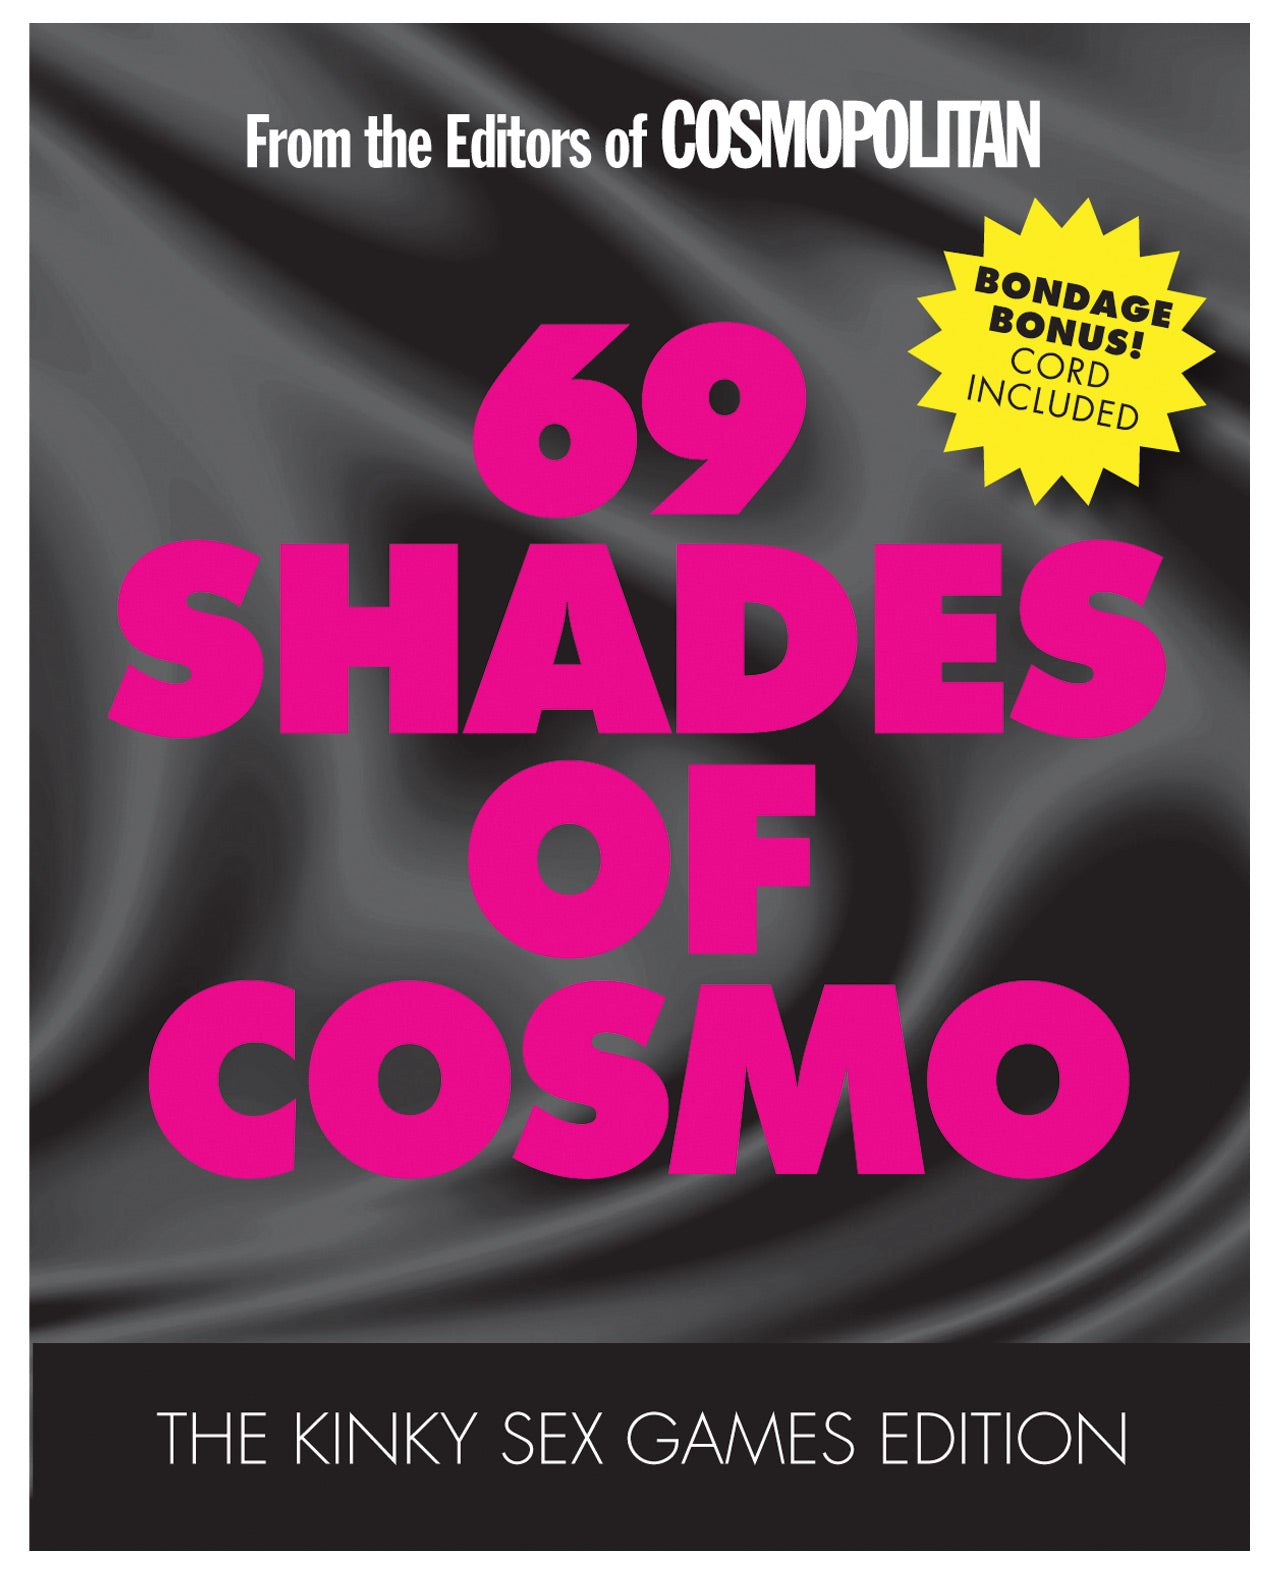 69 Shades of Cosmo - Kinky Sex Games Edition